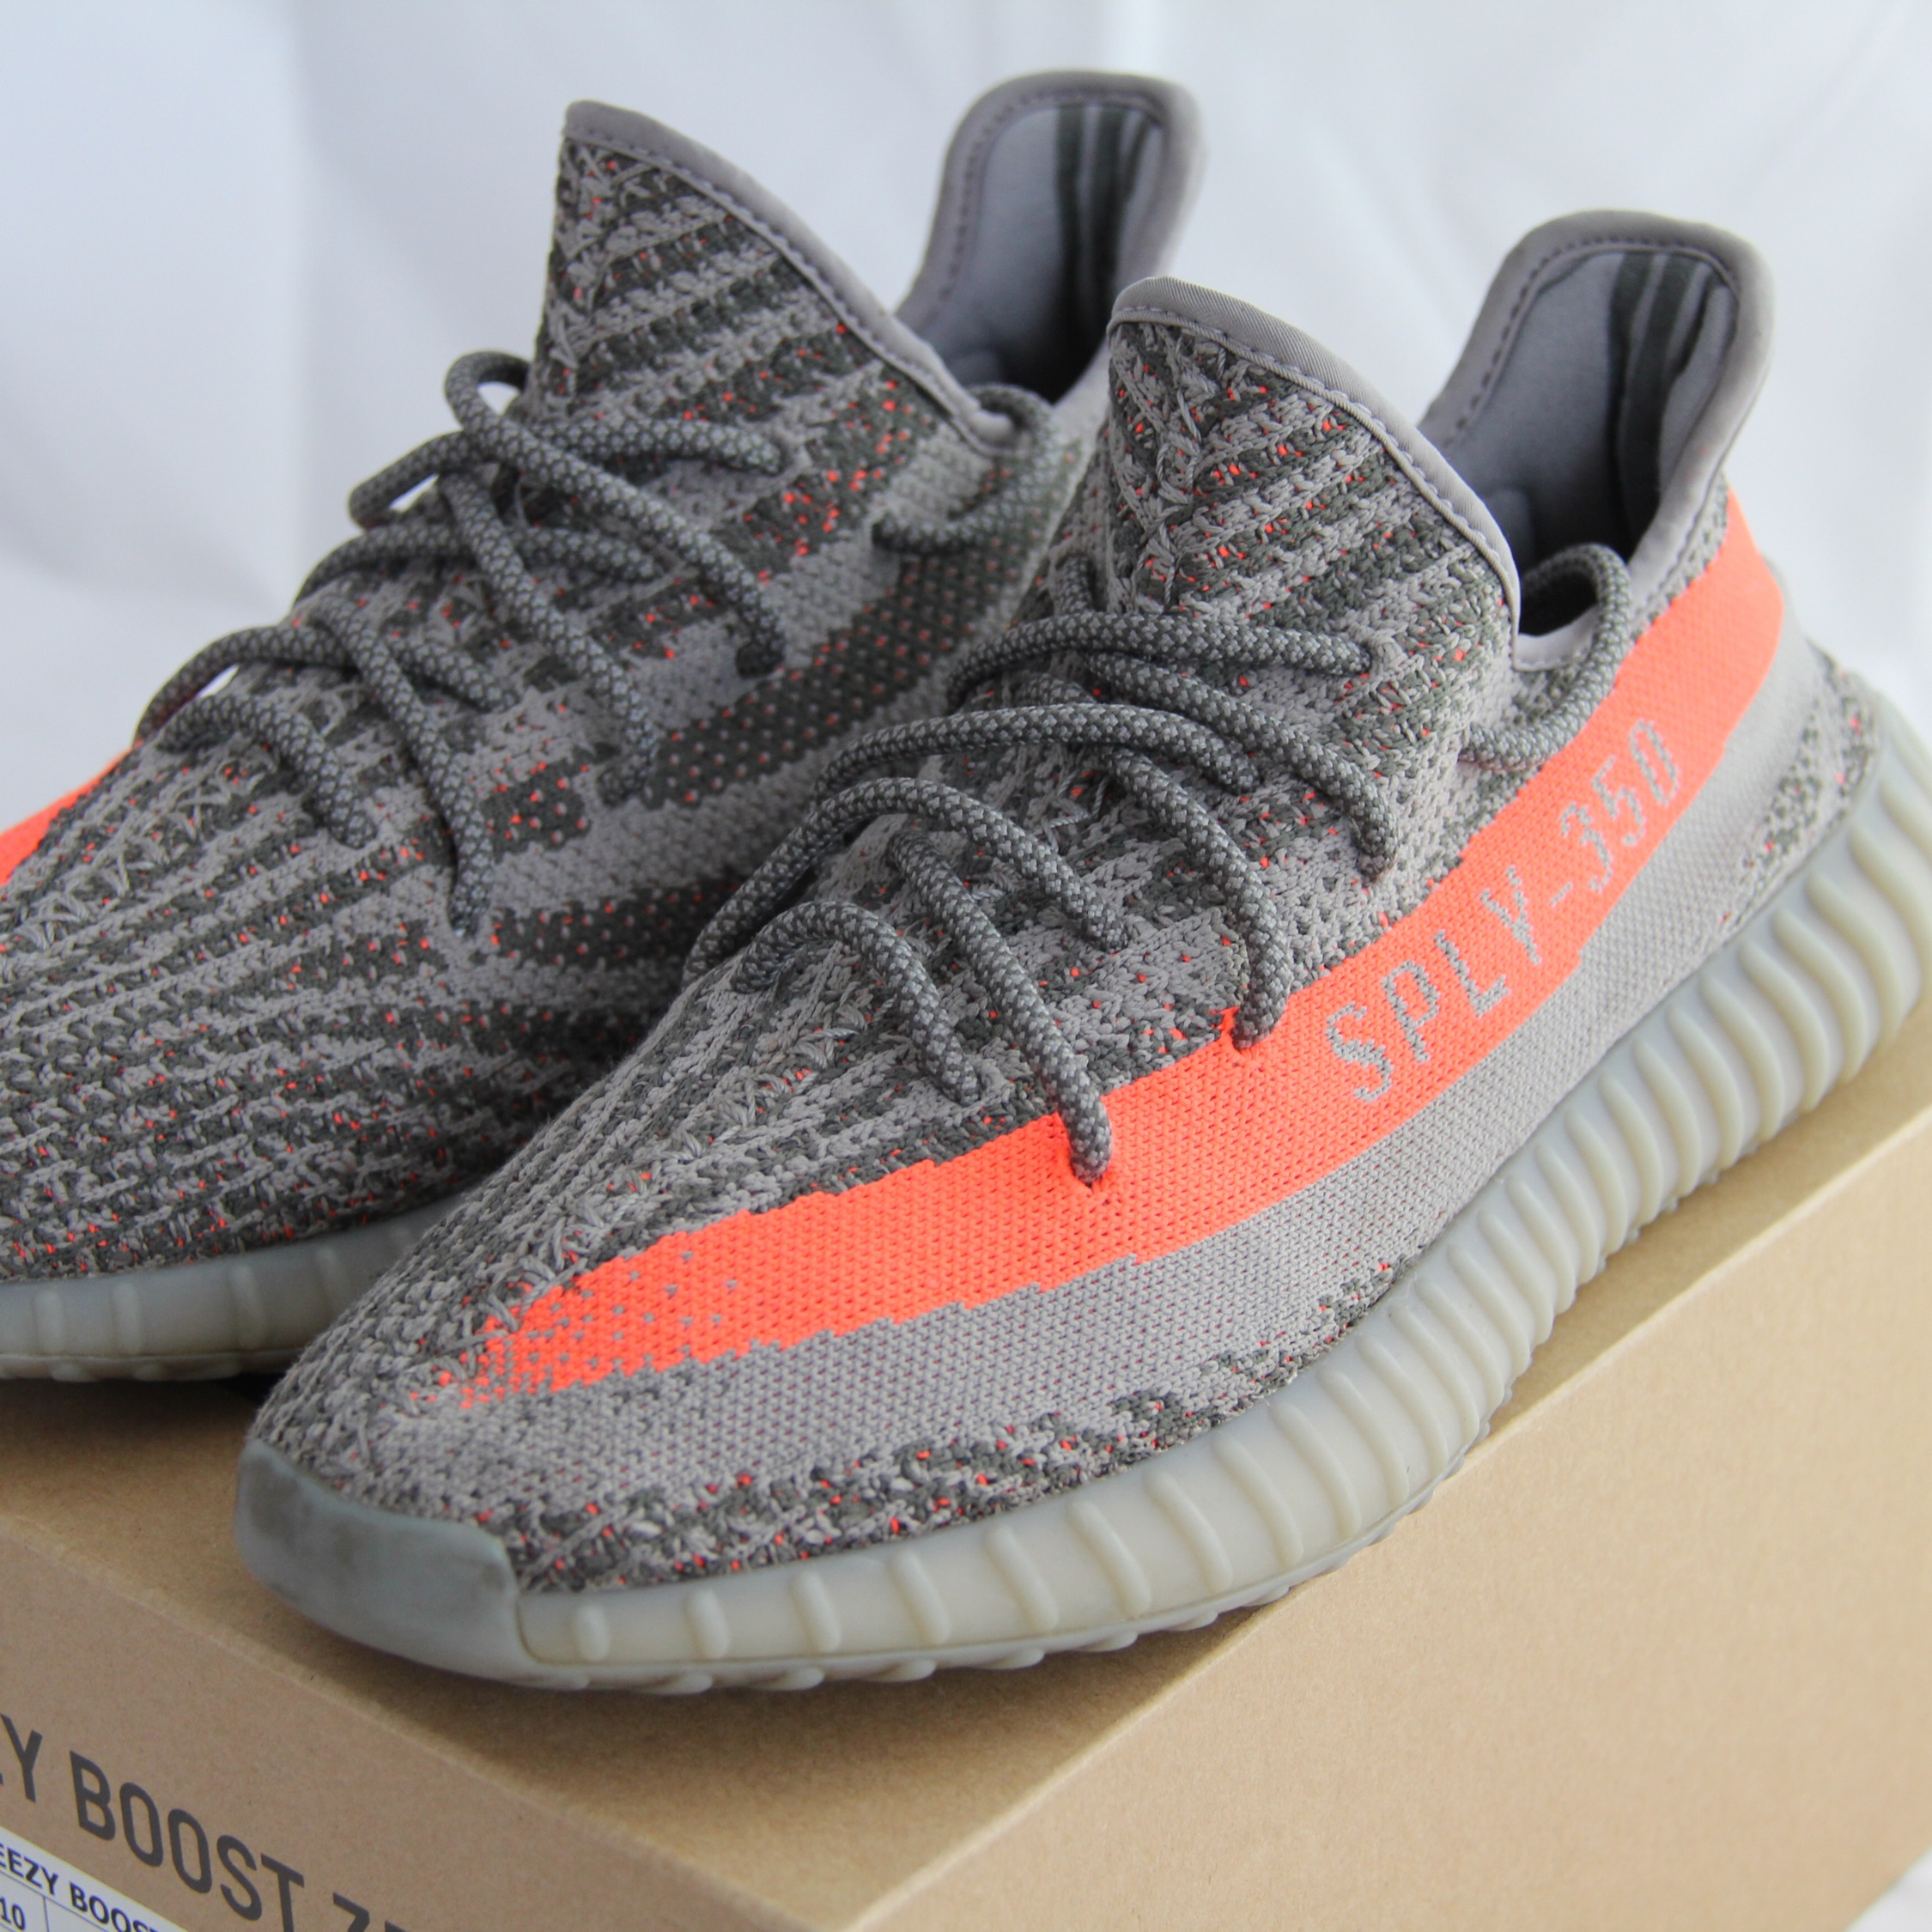 yeezy beluga v2 fake check